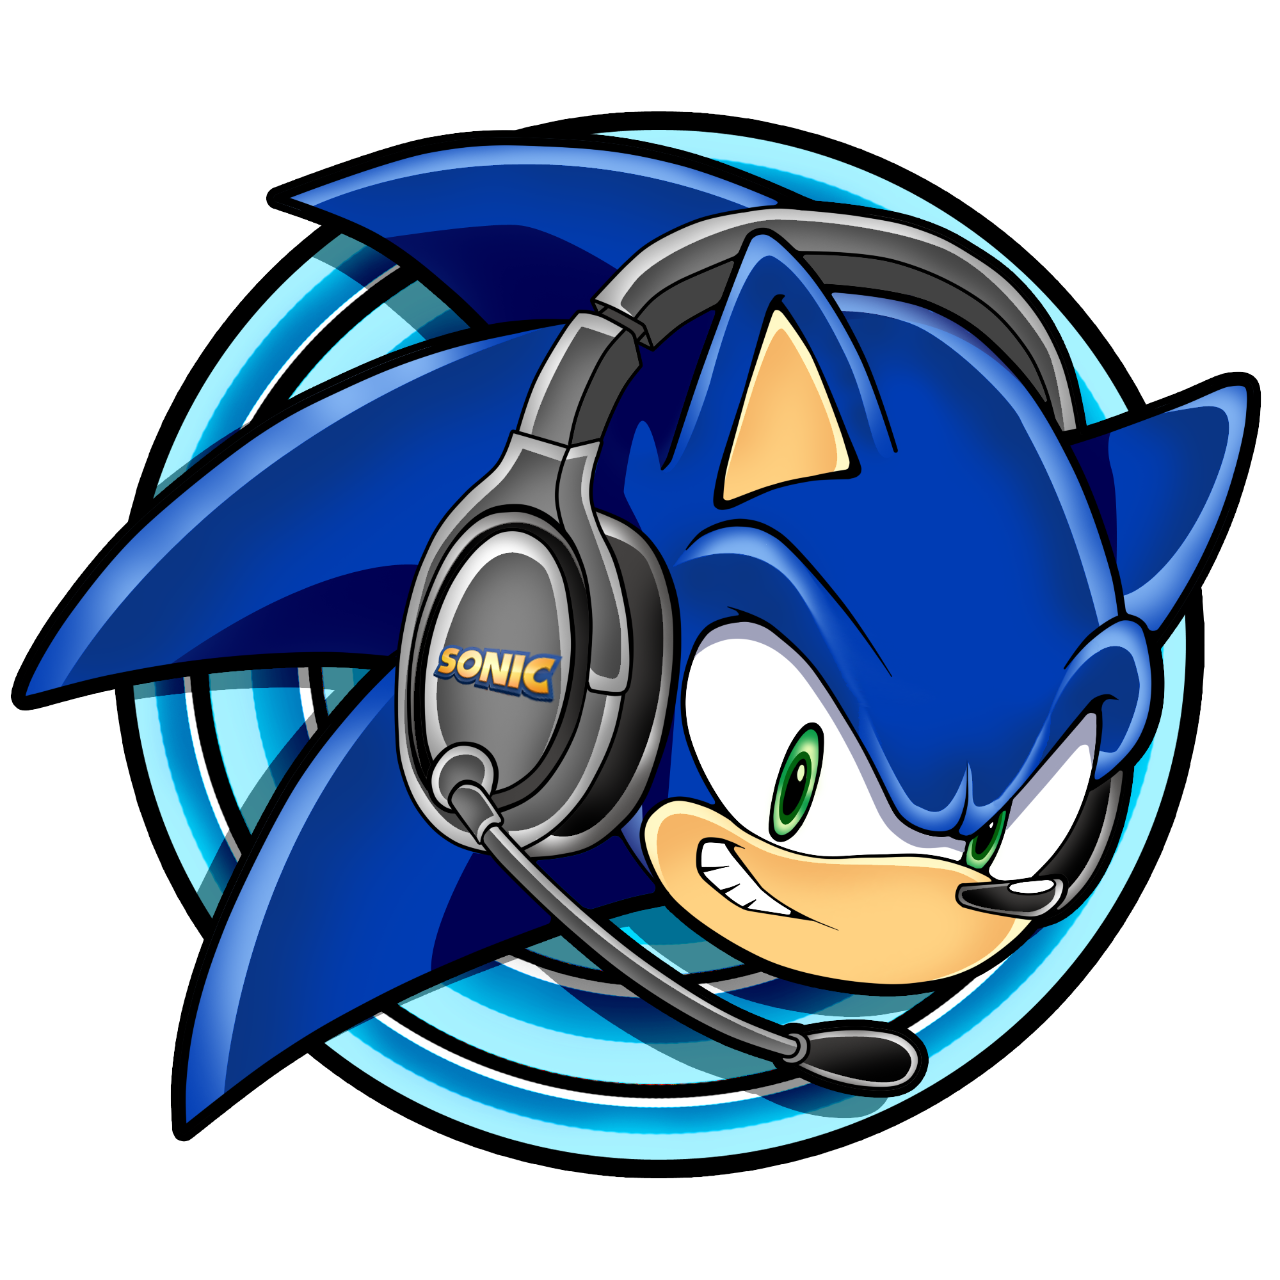 gift_request__sonic_with_headsets_avatar_by_kyuubi83256-d7j8dju.png